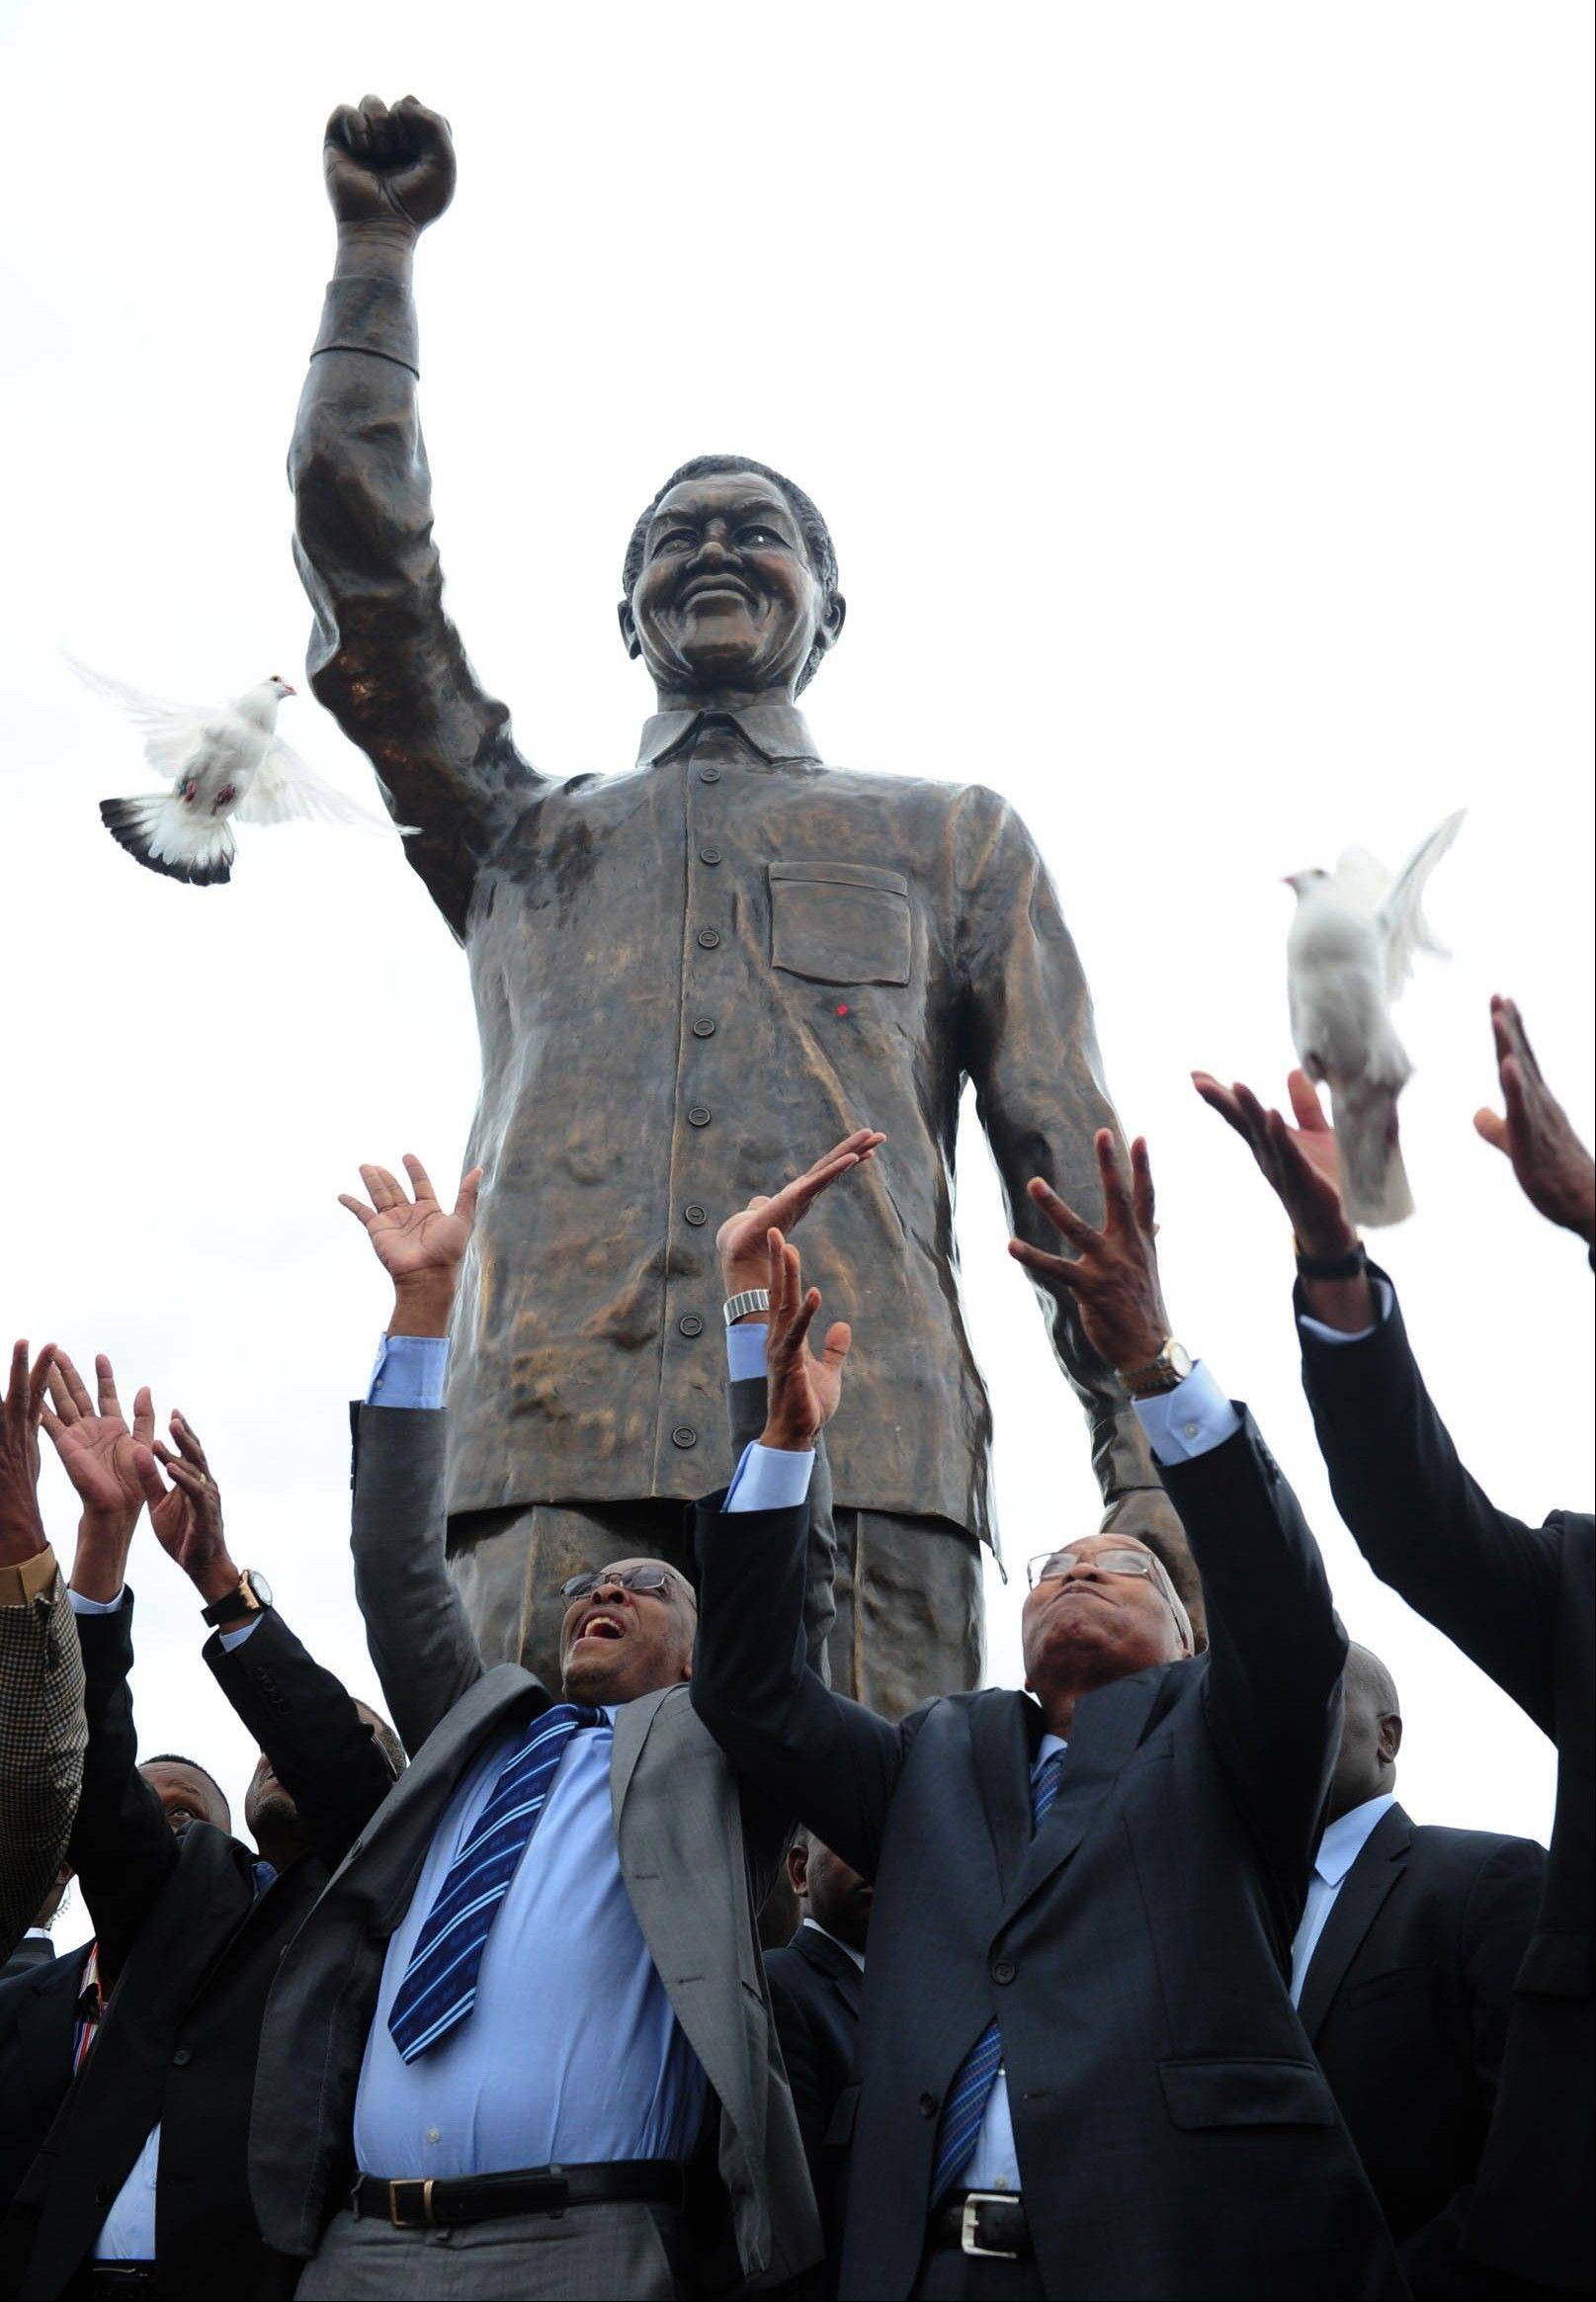 Doves are released after a giant statue of former President Nelson Mandela was unveiled on Naval Hill in Bloemfontein, South Africa, Thursday, Dec 13, 2012, by President Jacob Zuma, front right, ahead of the ruling African National Congress's elective conference. Mandela, who has been hospitalized since the weekend, is recovering from a lung infection.